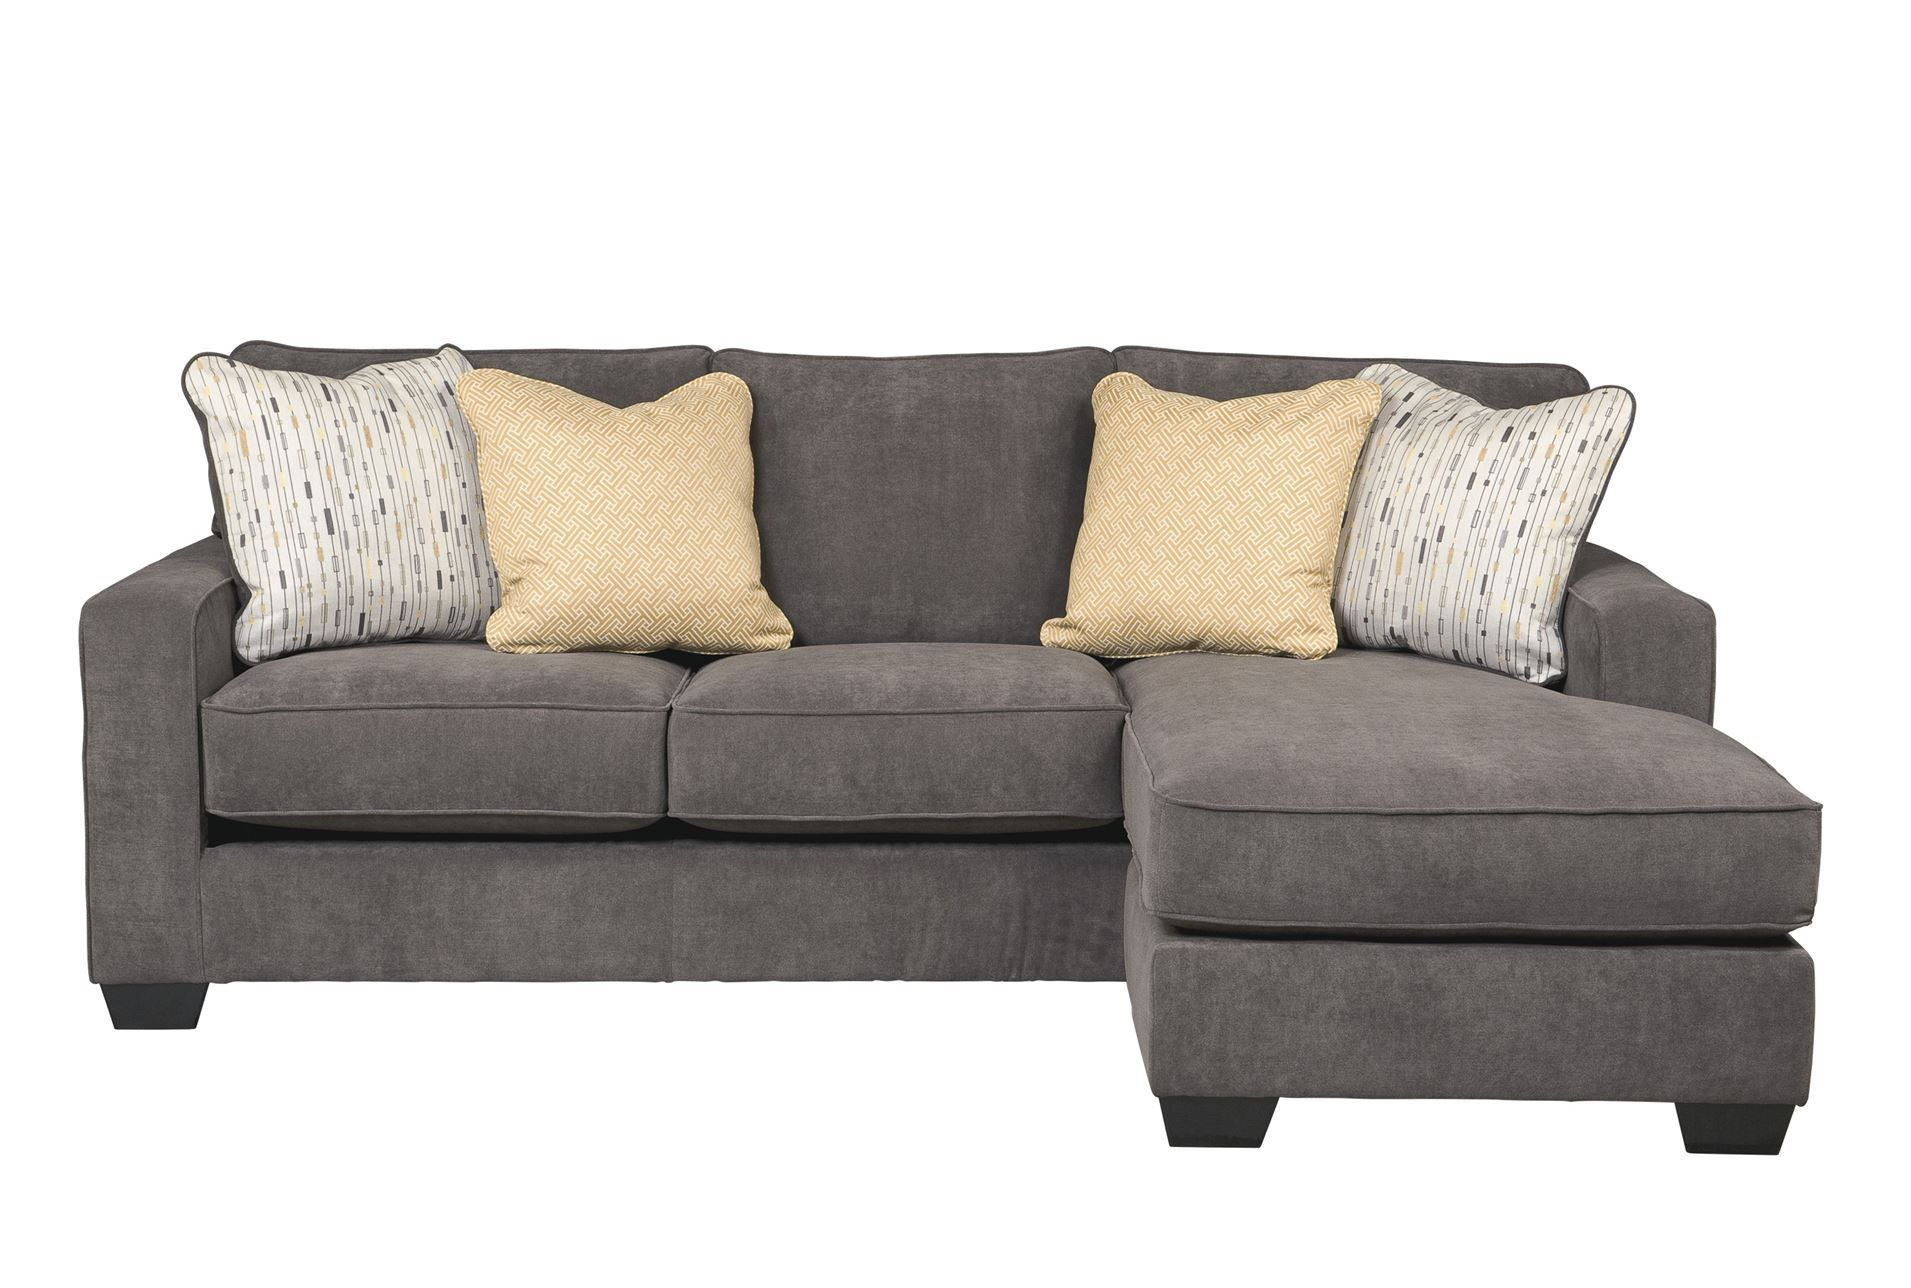 This dark gray sectional sofa is covered in a soft chenille and has